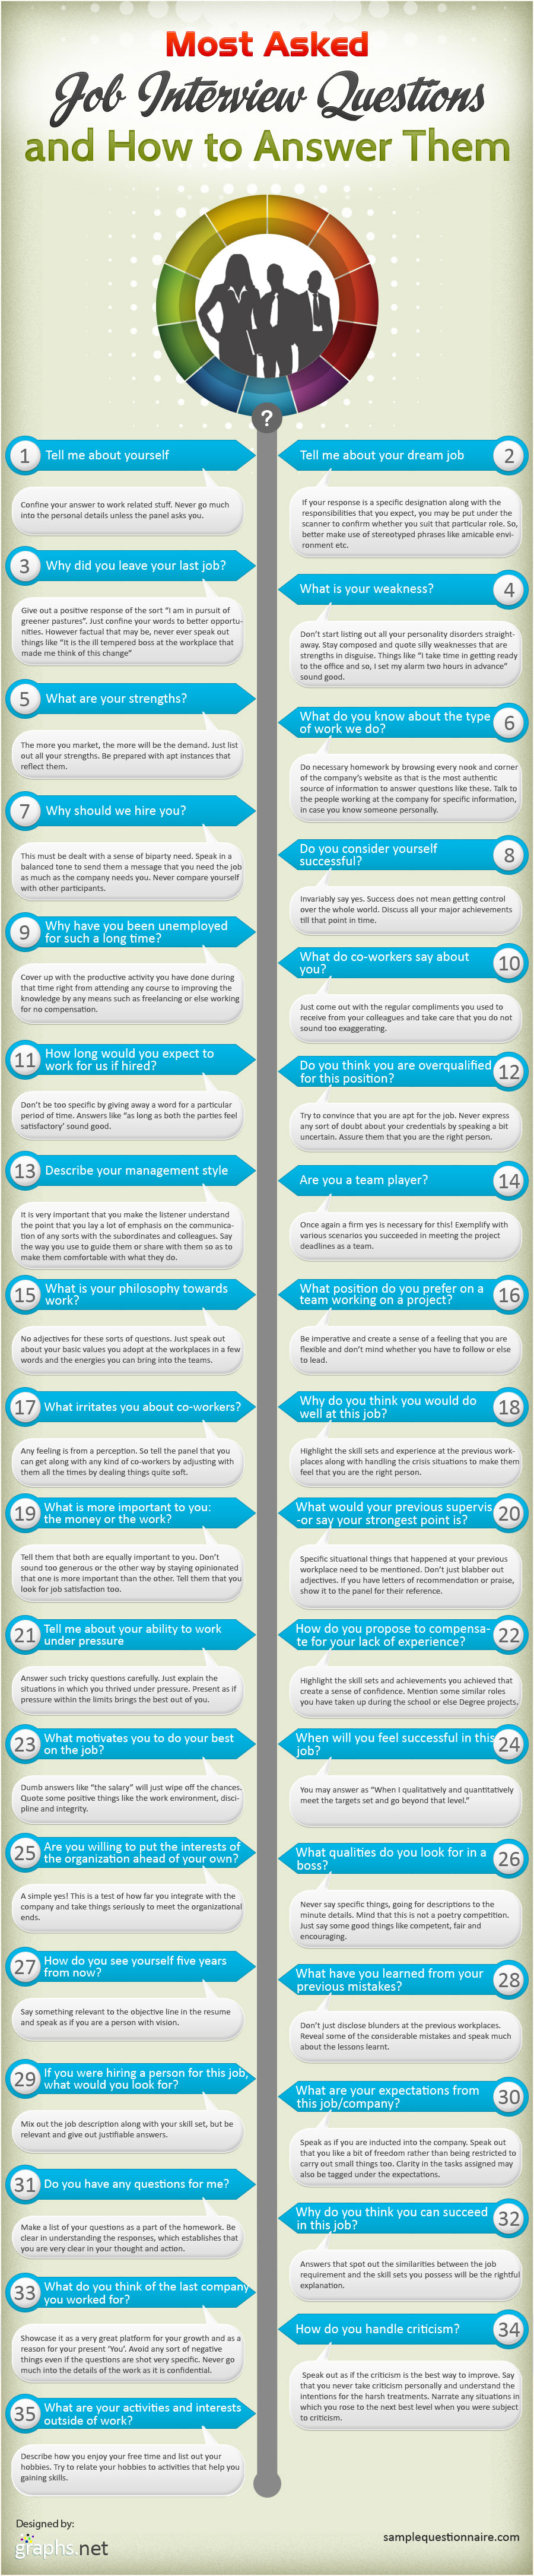 Job Interview Questions and Answers-Infographic